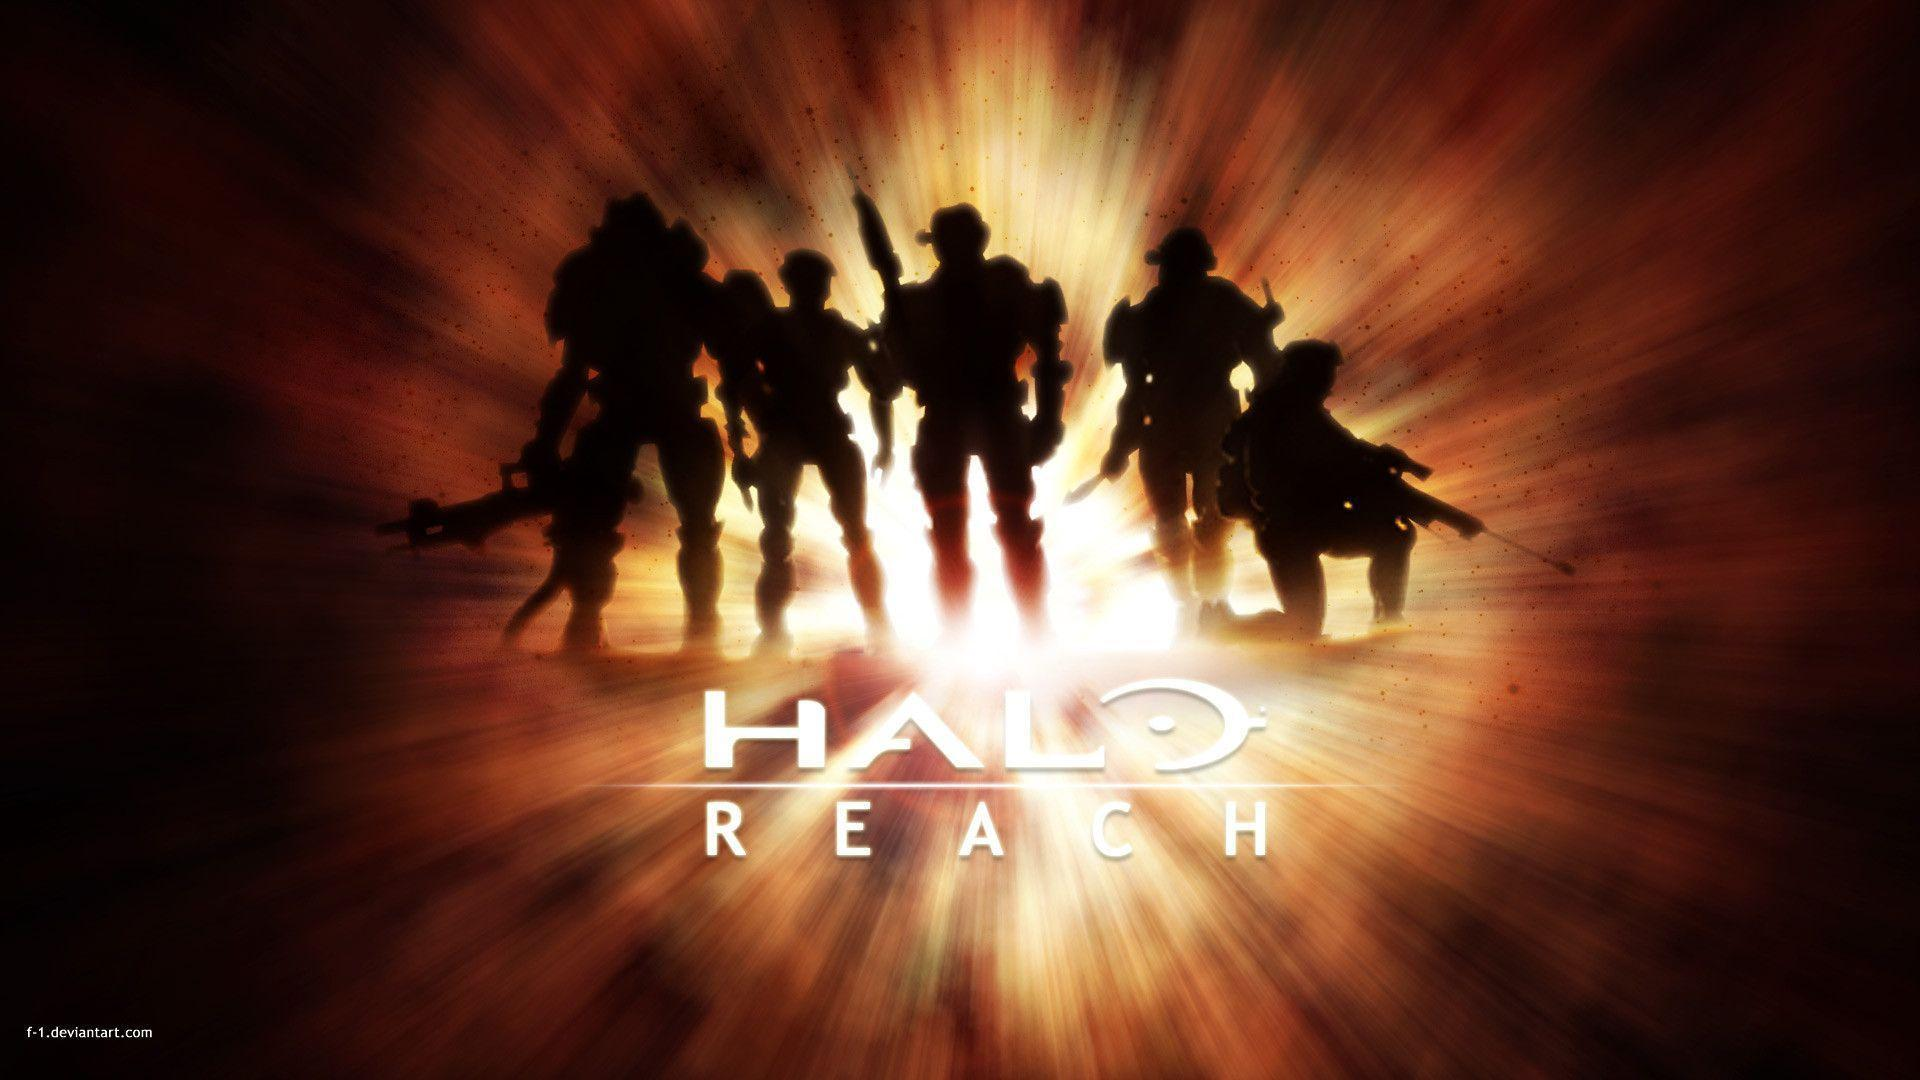 Halo Reach Desktop Backgrounds wallpapers